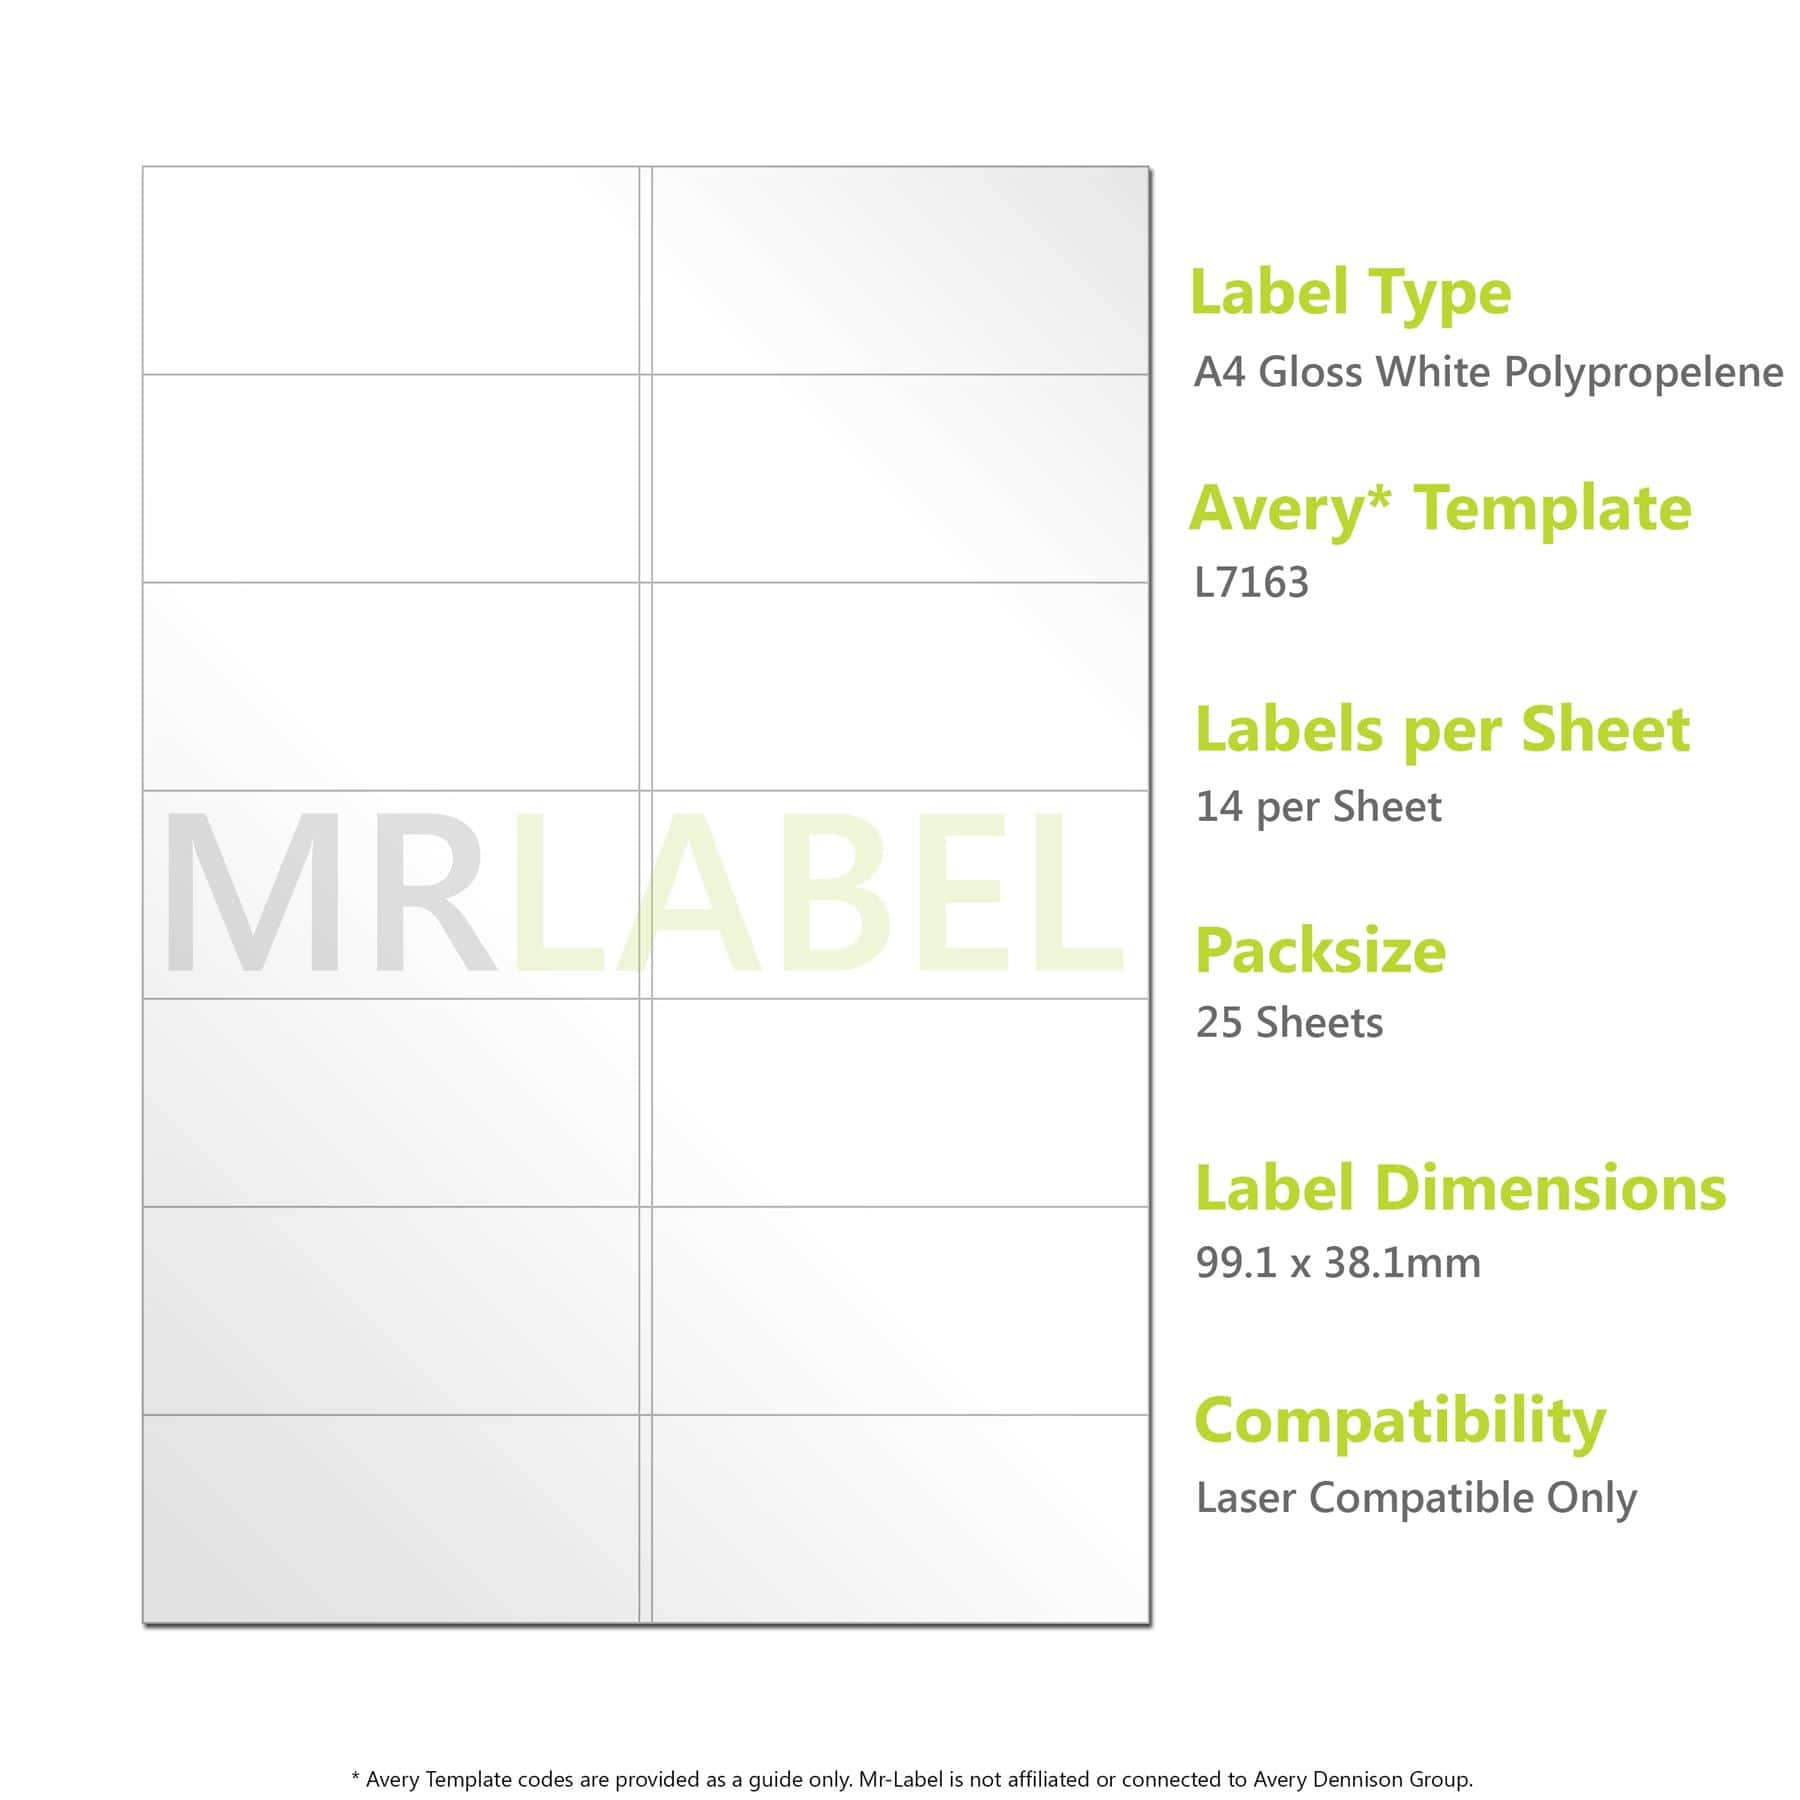 Label Template 14 Per Sheet 4 X 1.5 And Niceday Label Template 4 Per Sheet